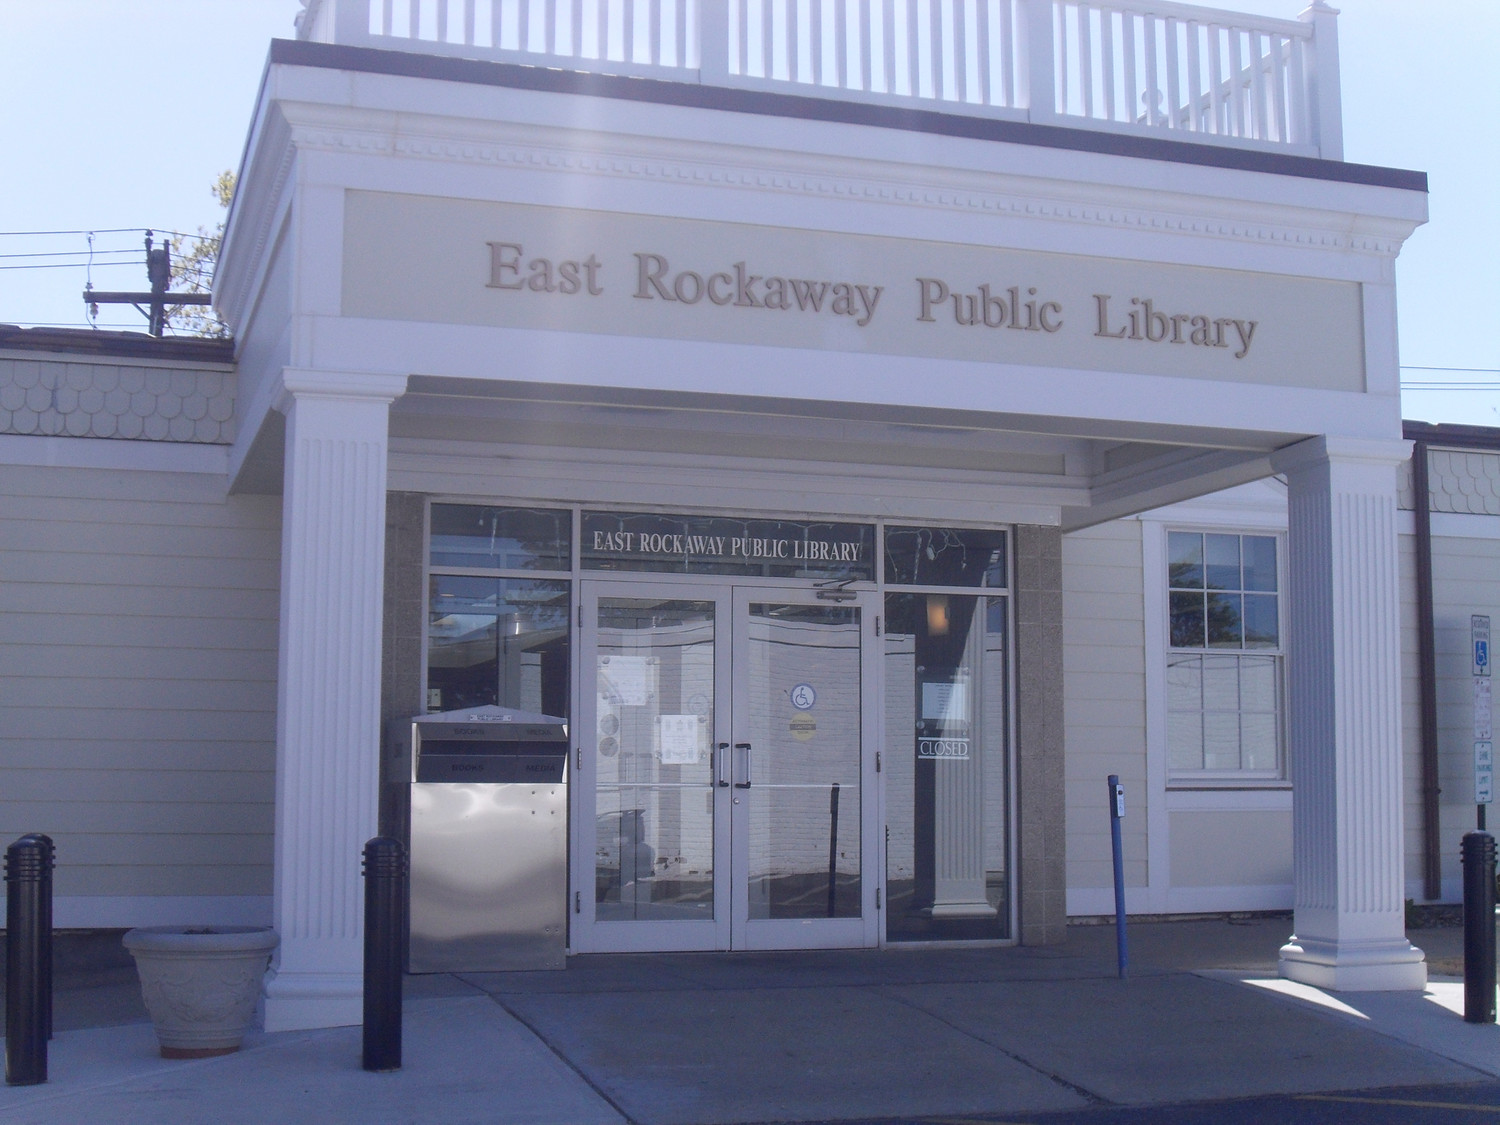 Over the next two months, East Rockaway Public Library Director Mary Thorpe said, the board of directors plans to discuss adding a Rave security app to alert all of the library's staff and local law enforcement in emergency situations.